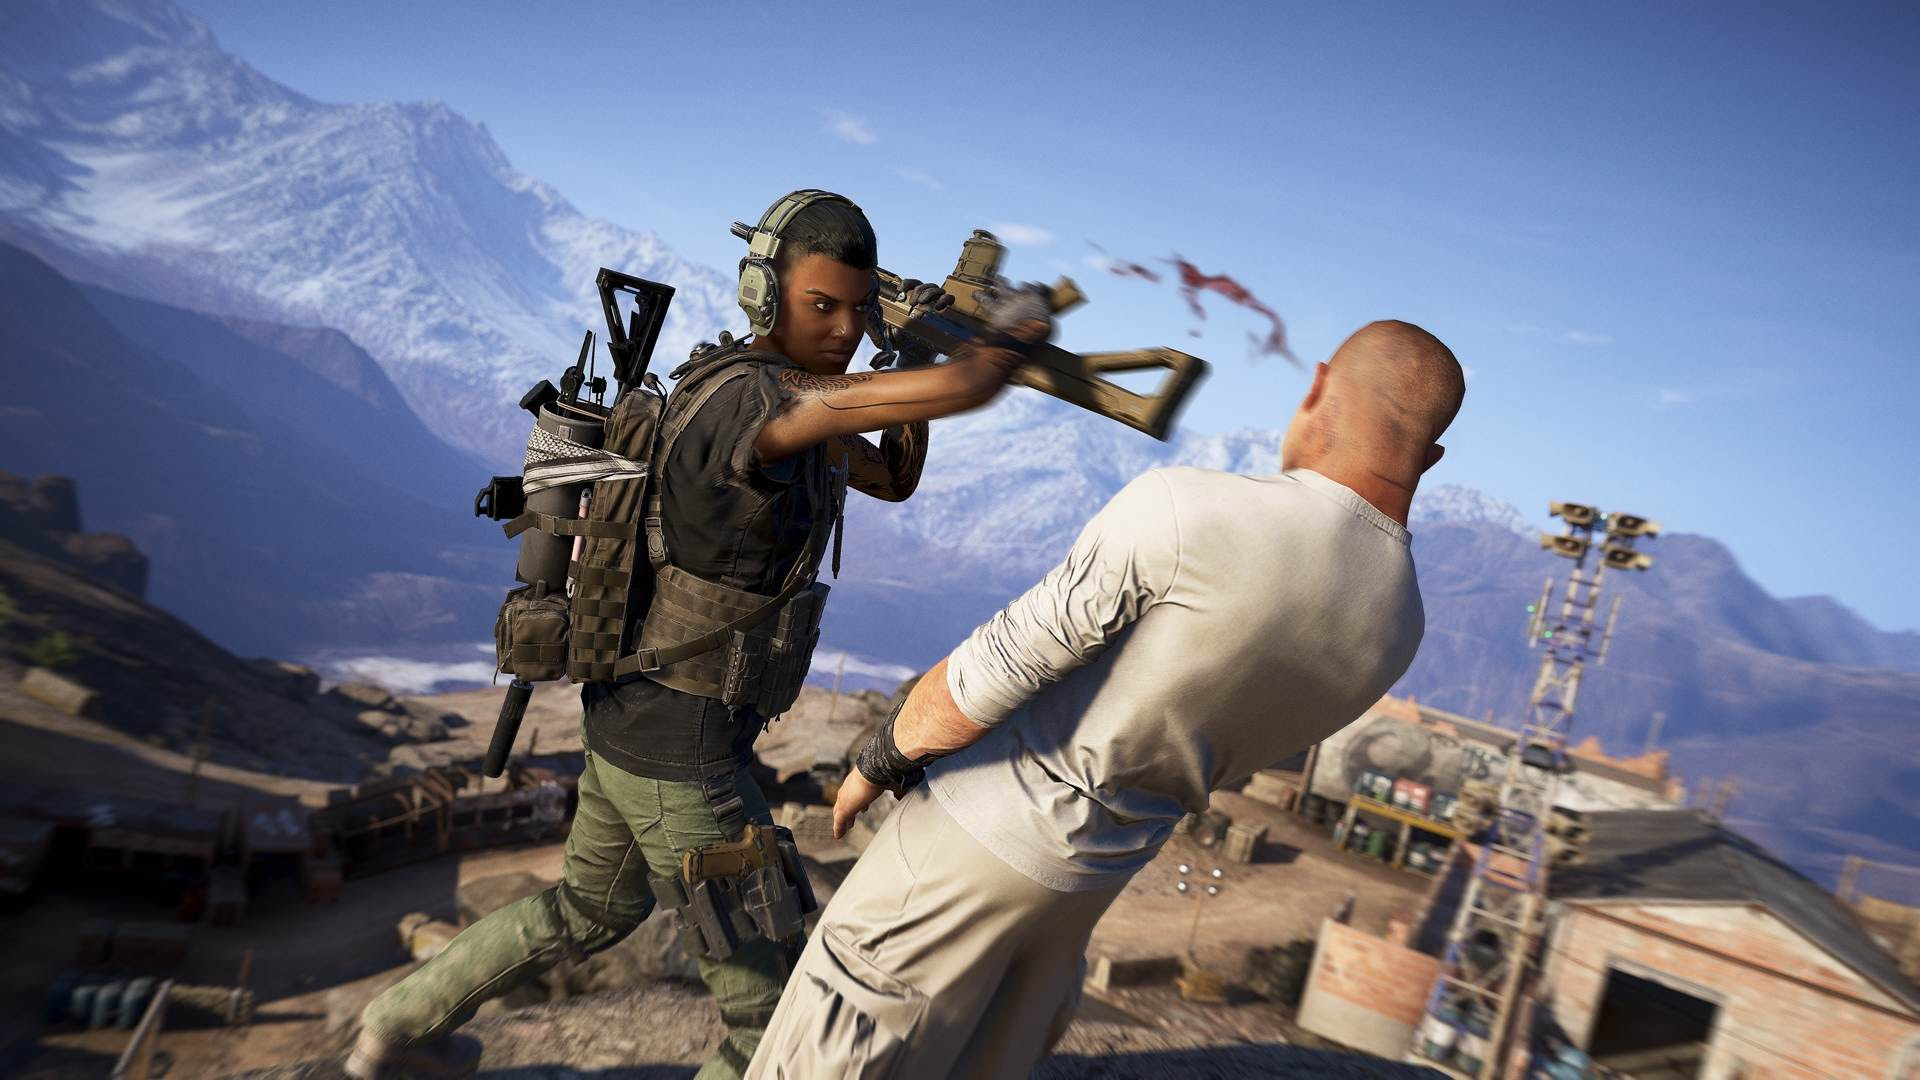 Oh yeah, Ghost Recon Wildlands is still gettting a PvP mode screenshot